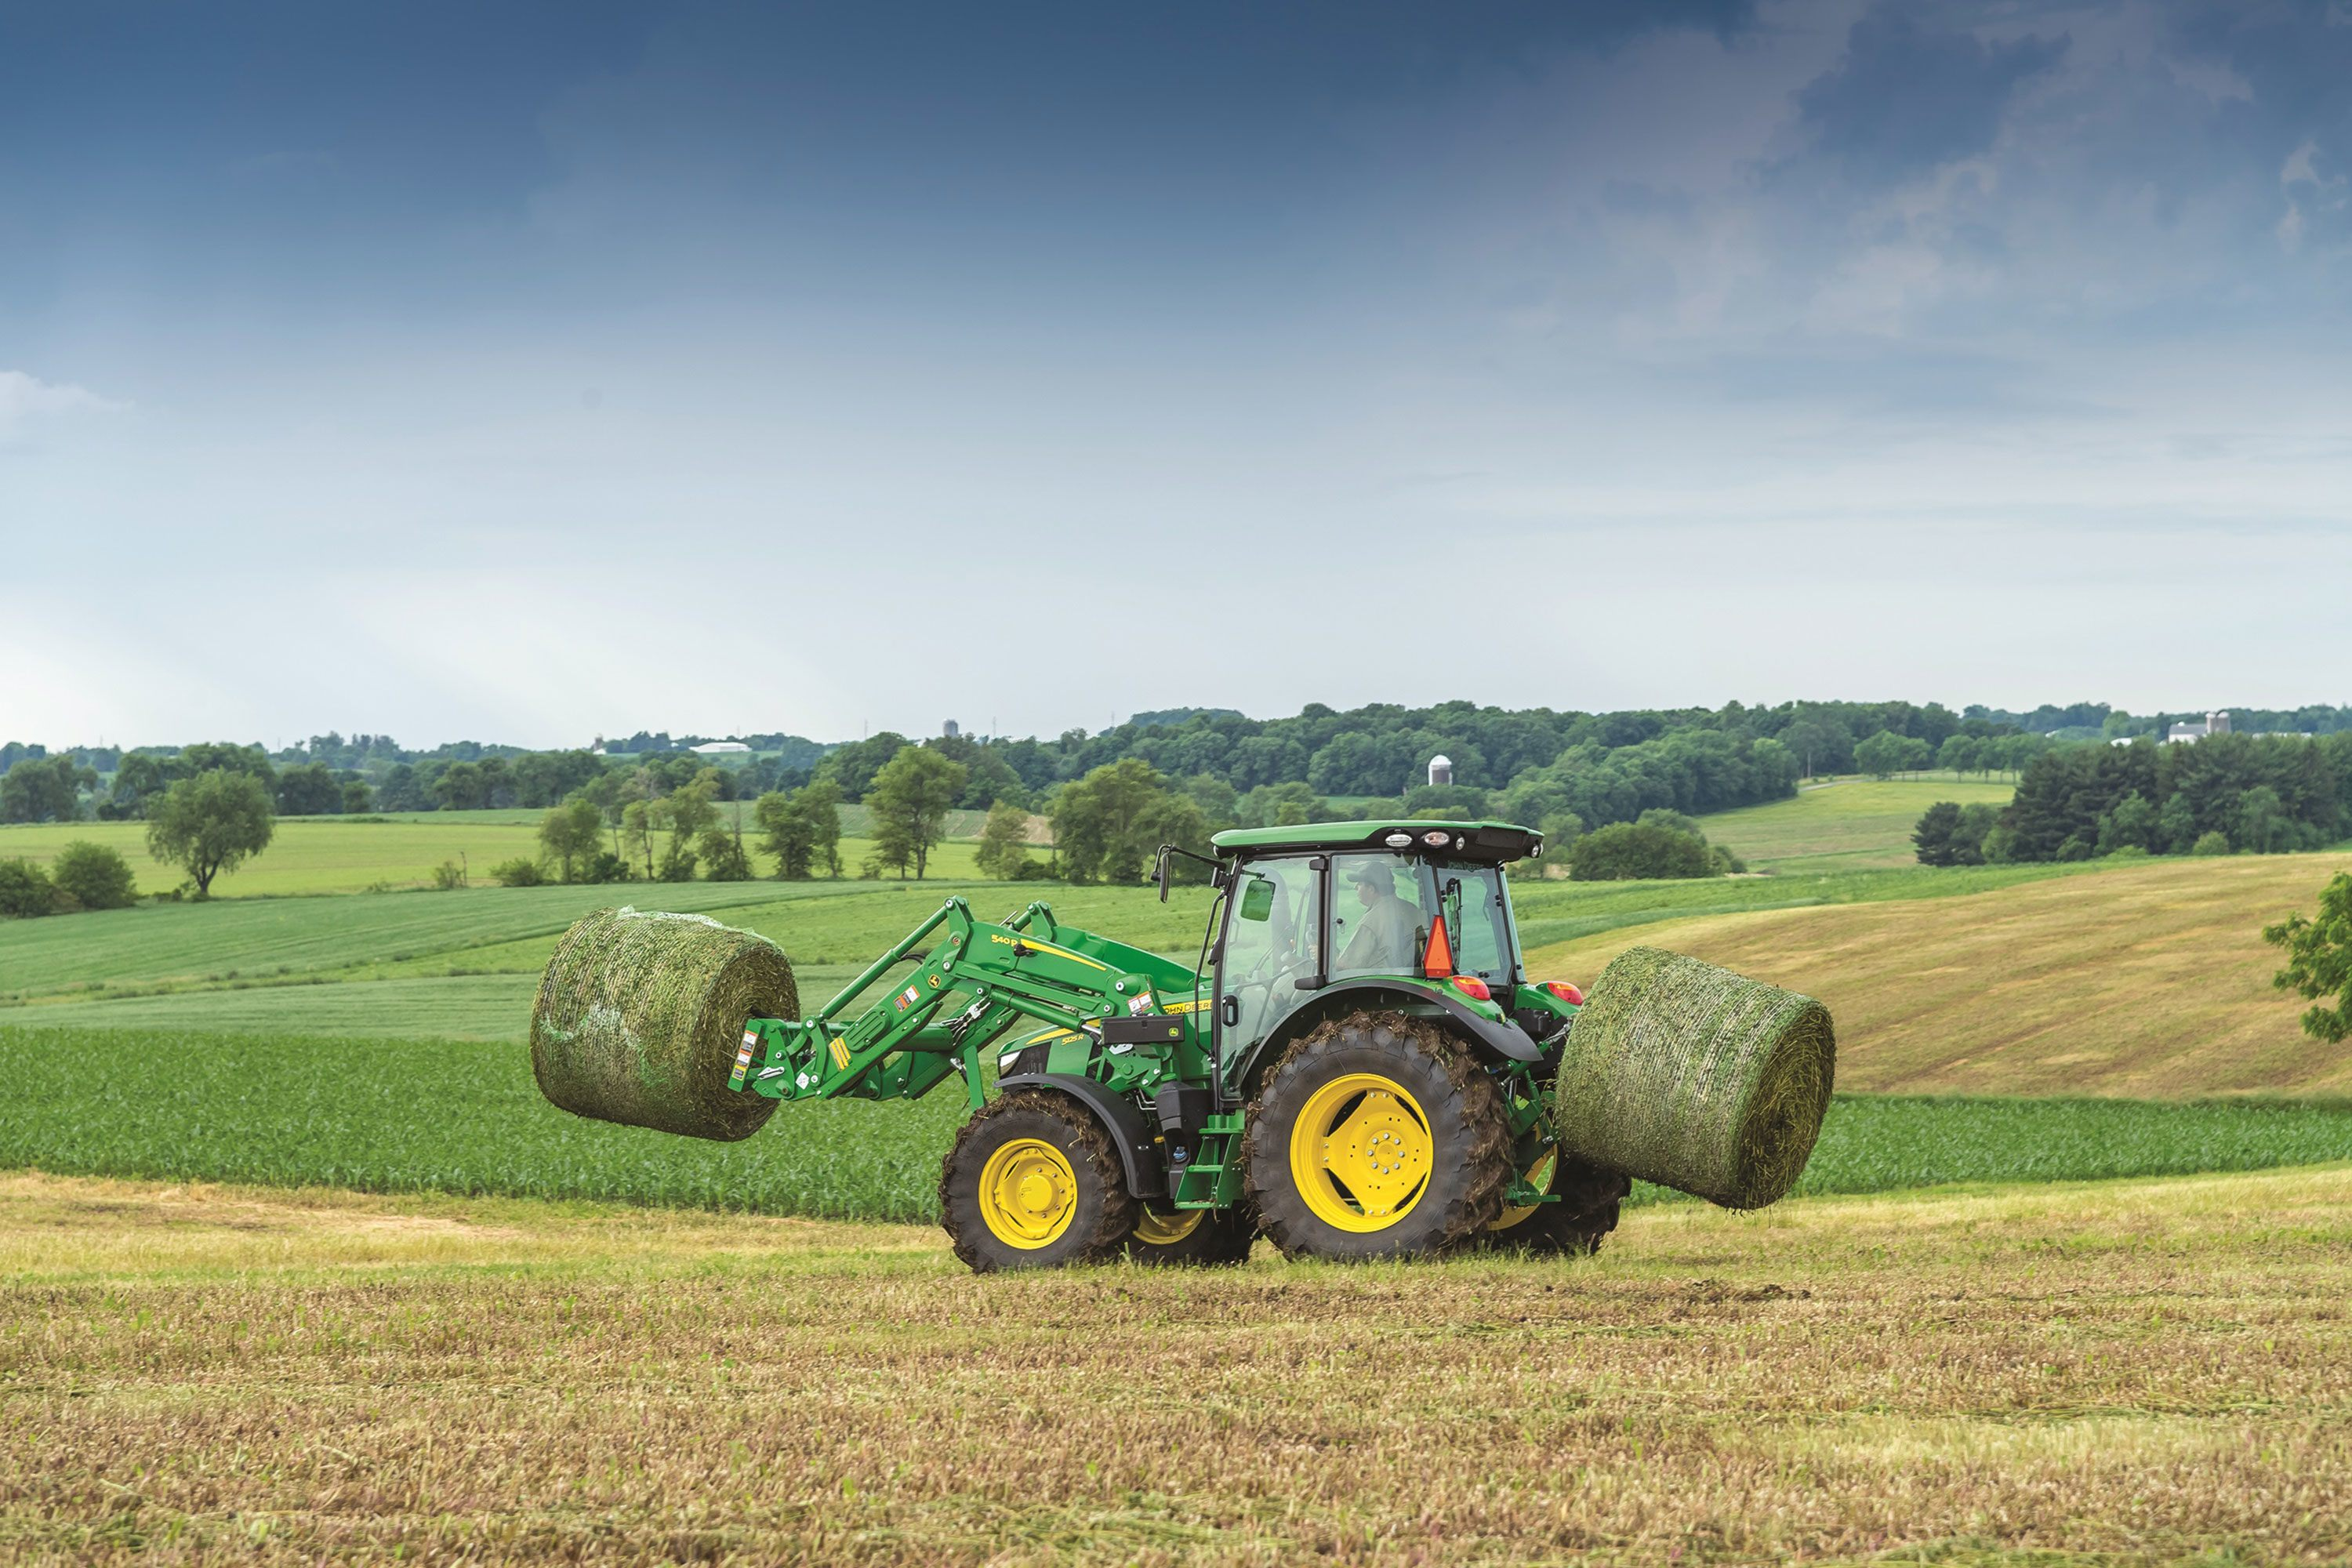 John Deere Introduces New 5R Series Tractors and New 540R ...